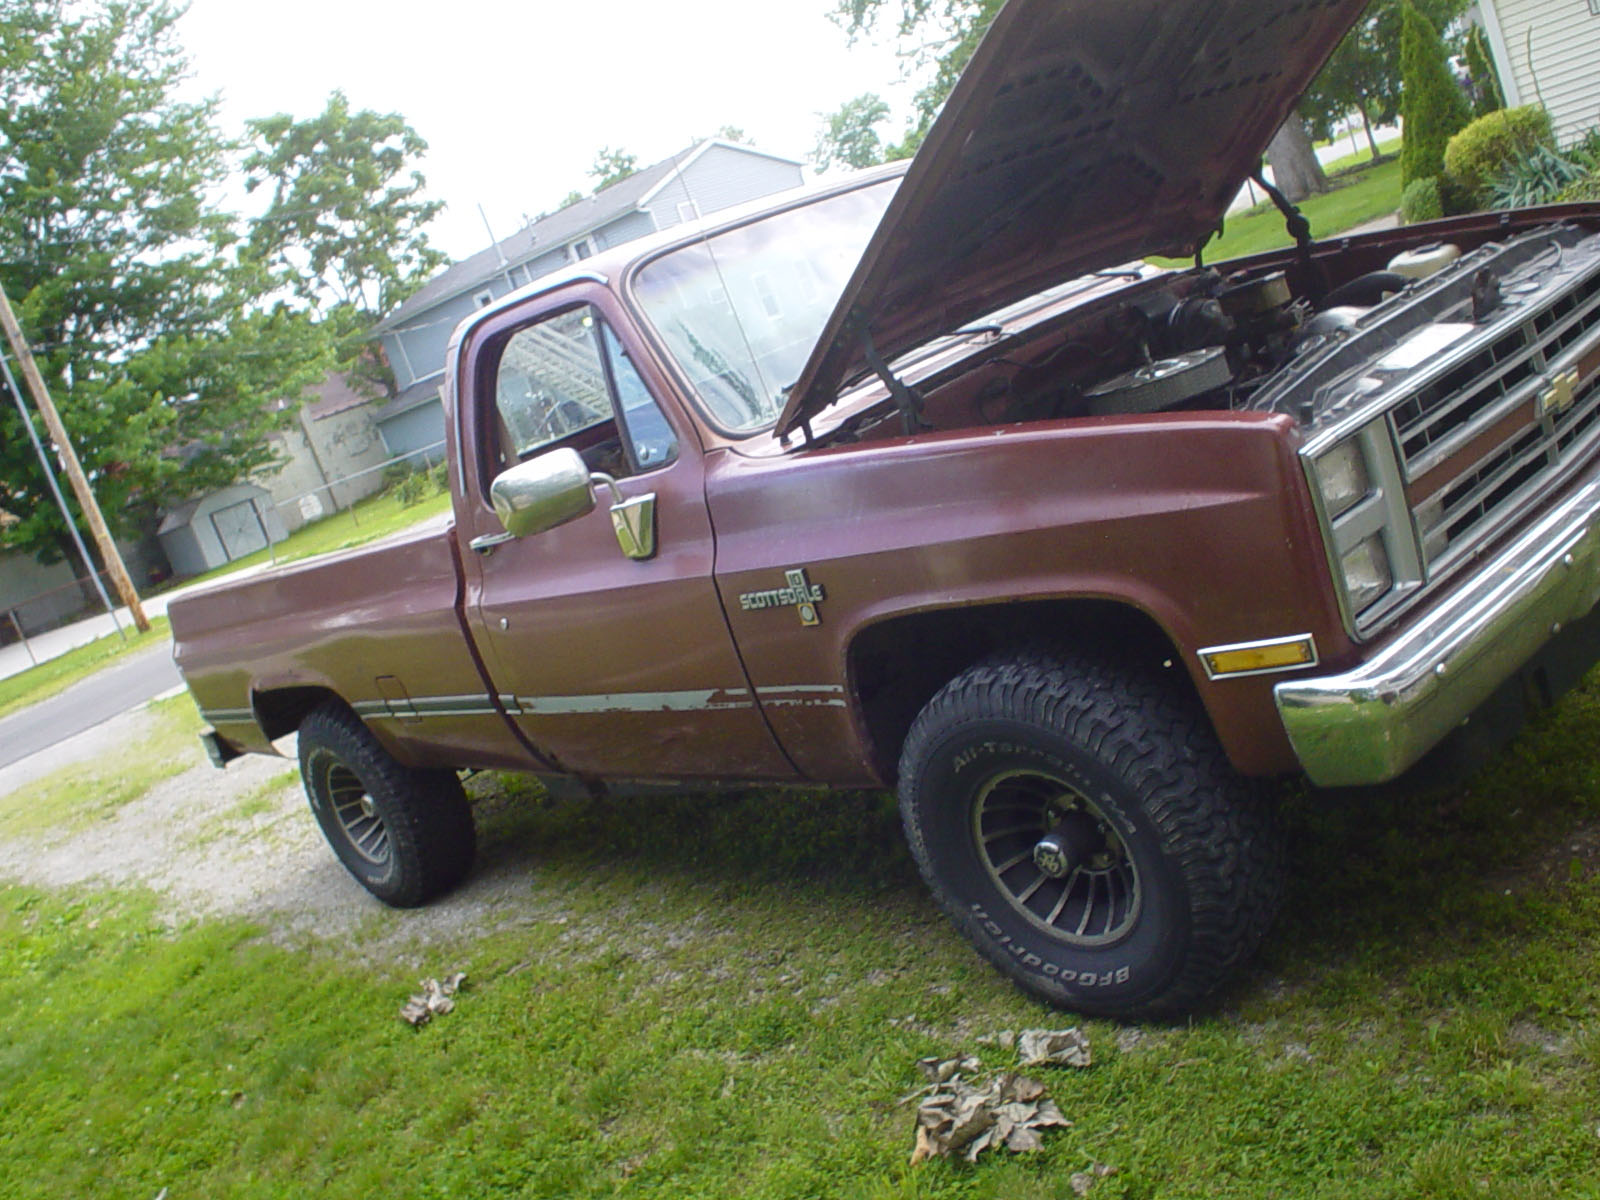 1985 Chevy C10 Parts 1986 Chevrolet k10 [C10/K10] For Sale | Leo Indiana